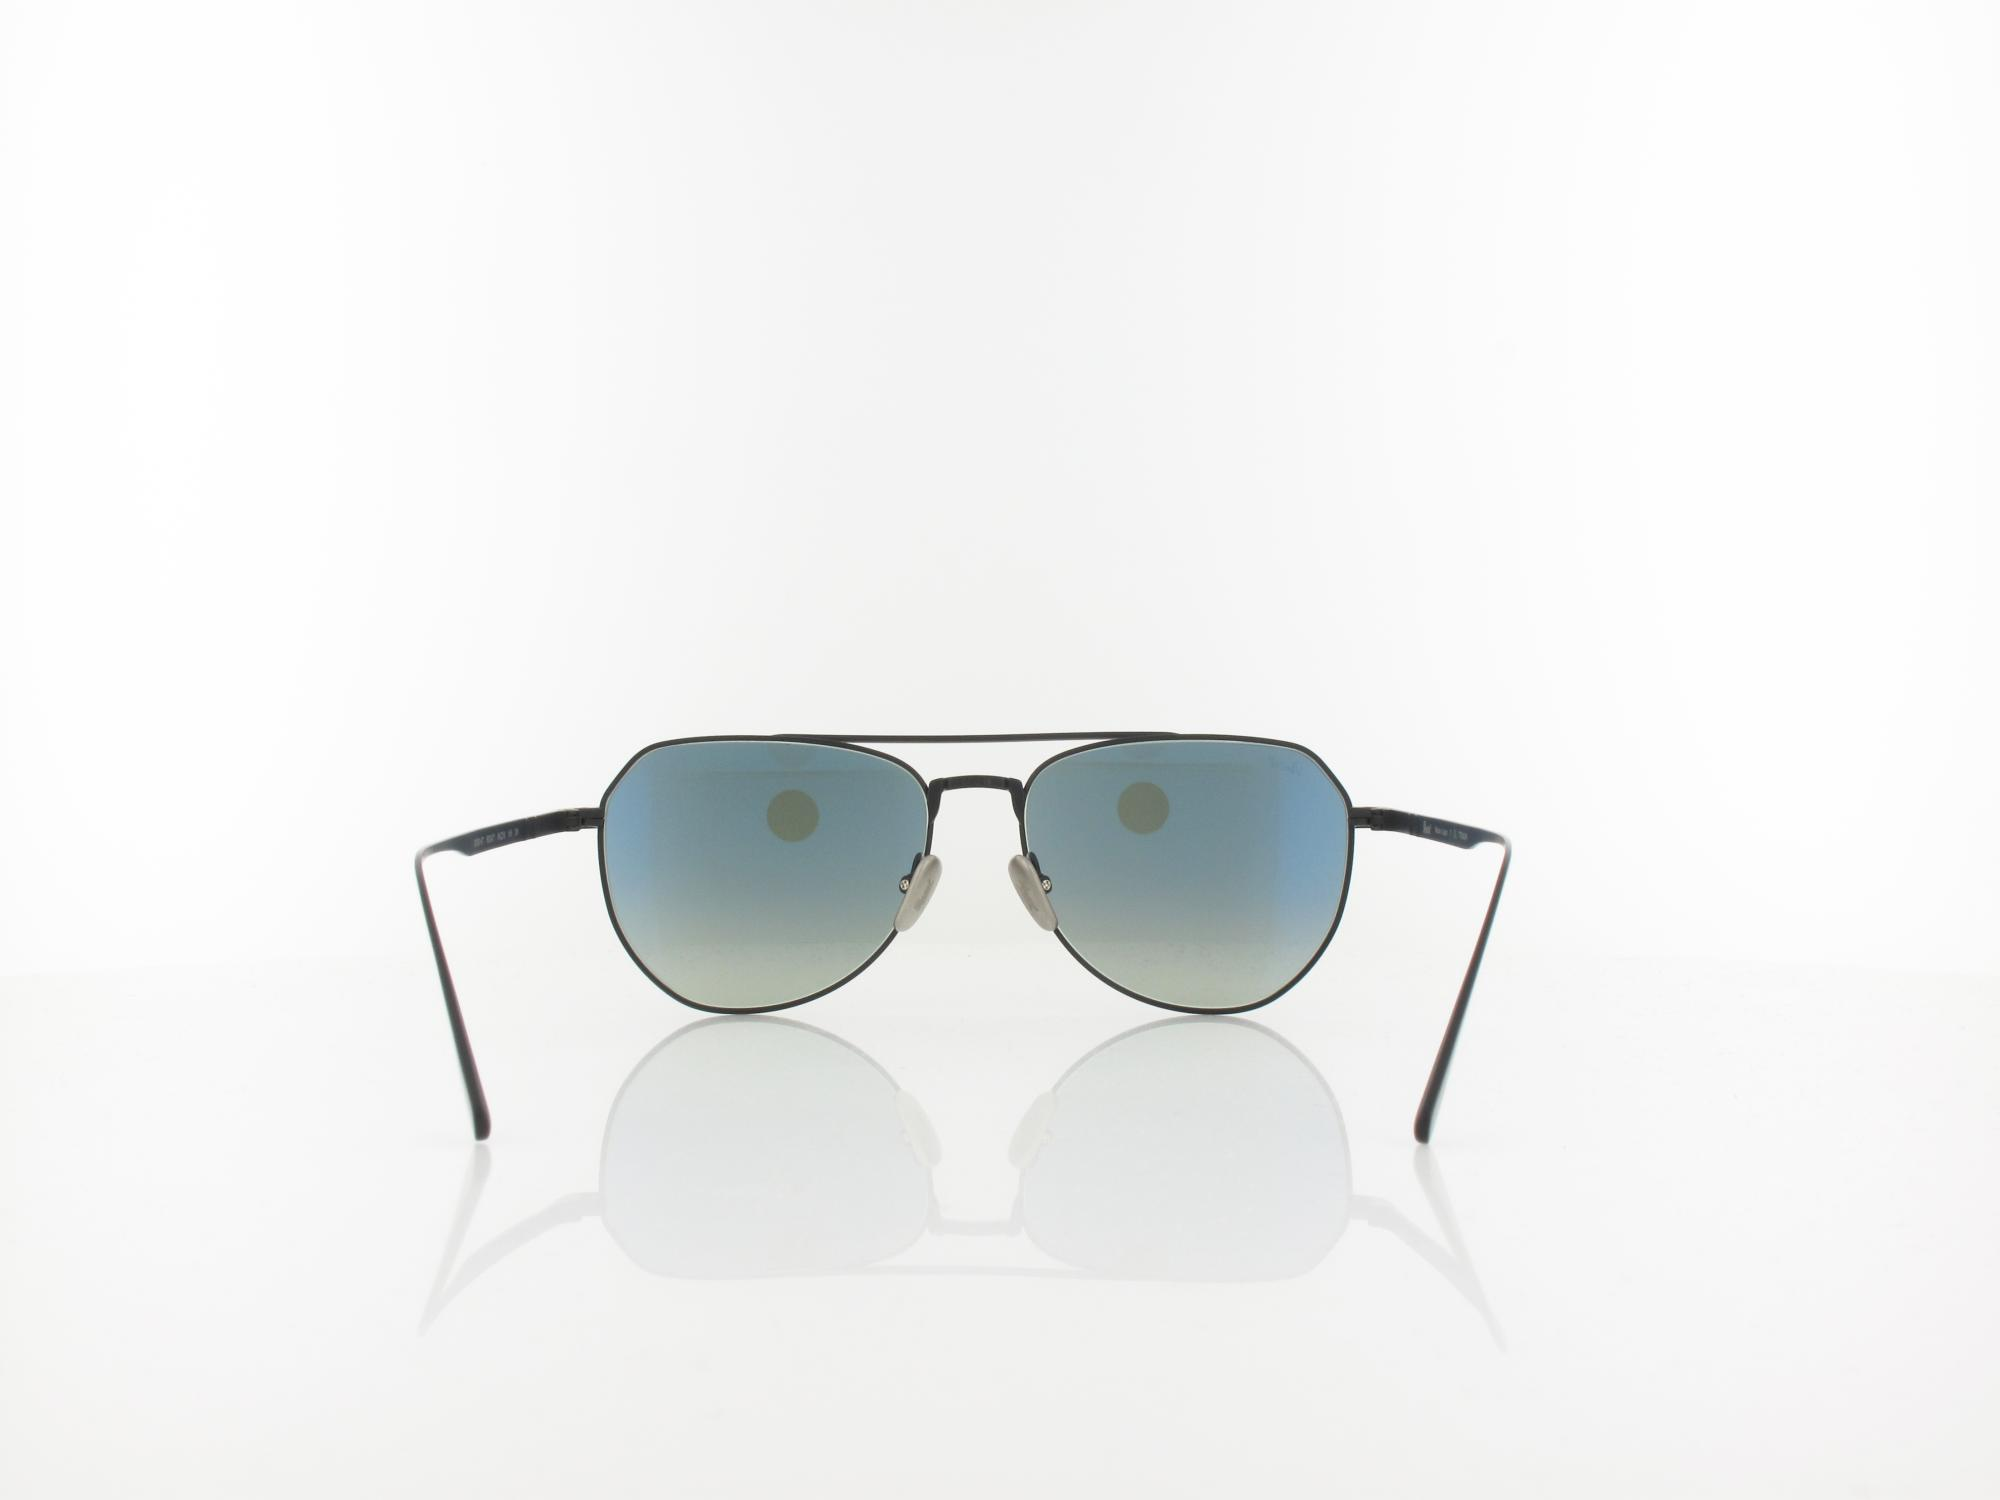 Persol | PO5003T 800471 54 | matte black / grey gradient dark grey